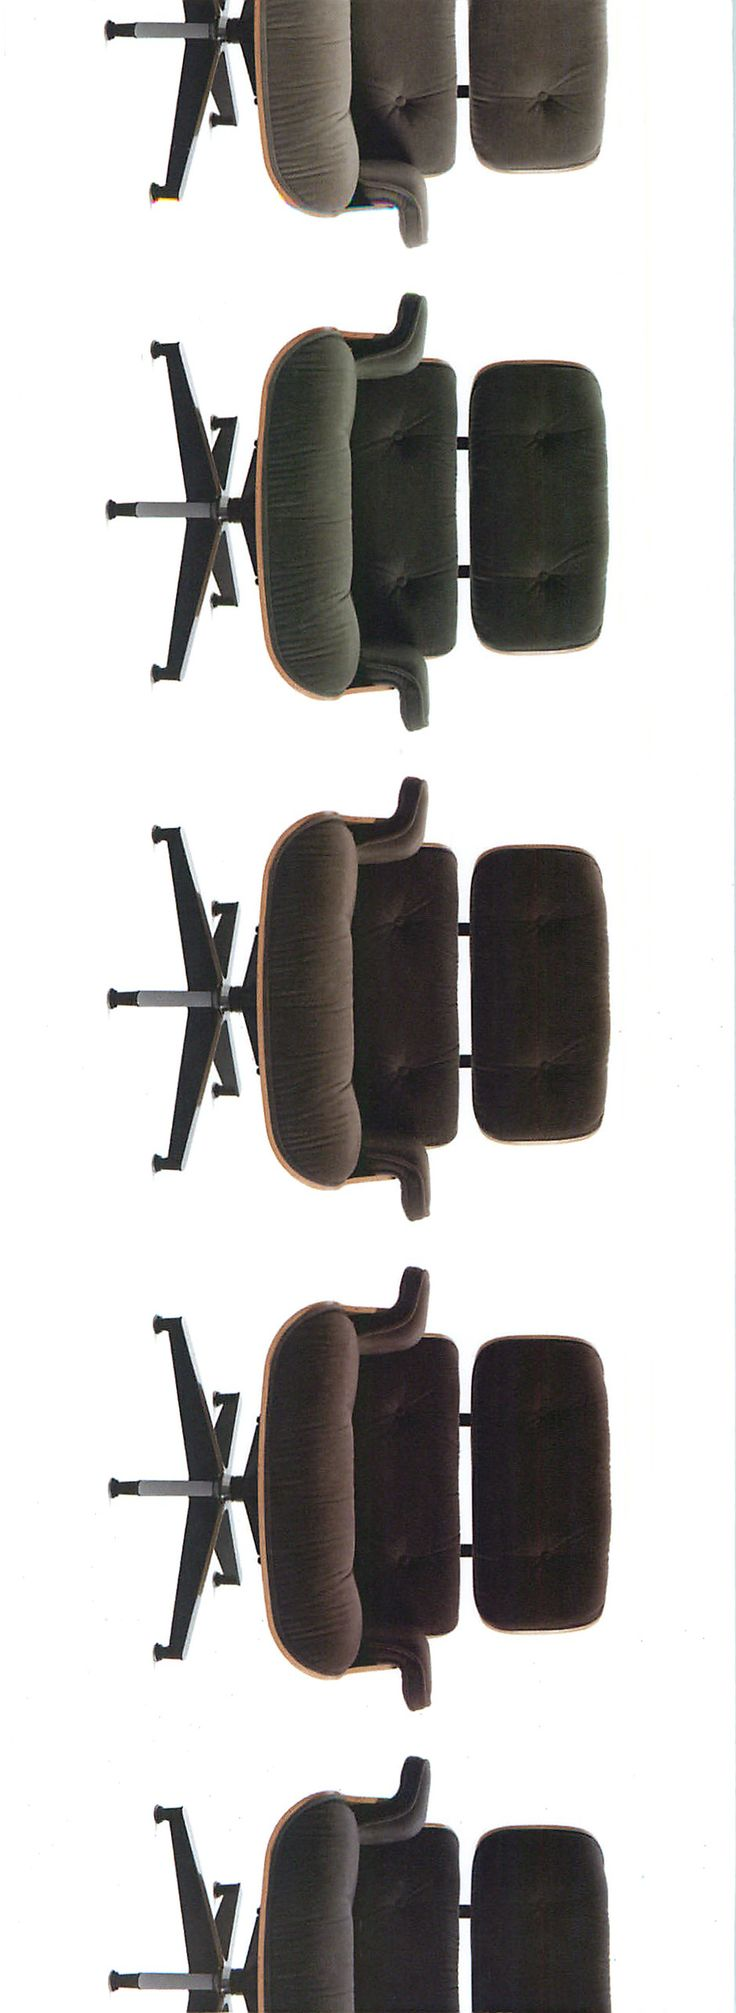 Every one's favorite, The #Eames Lounge Chair and Ottoman, is now available in #mohair by @maharam for @hermanmiller @dwrpins